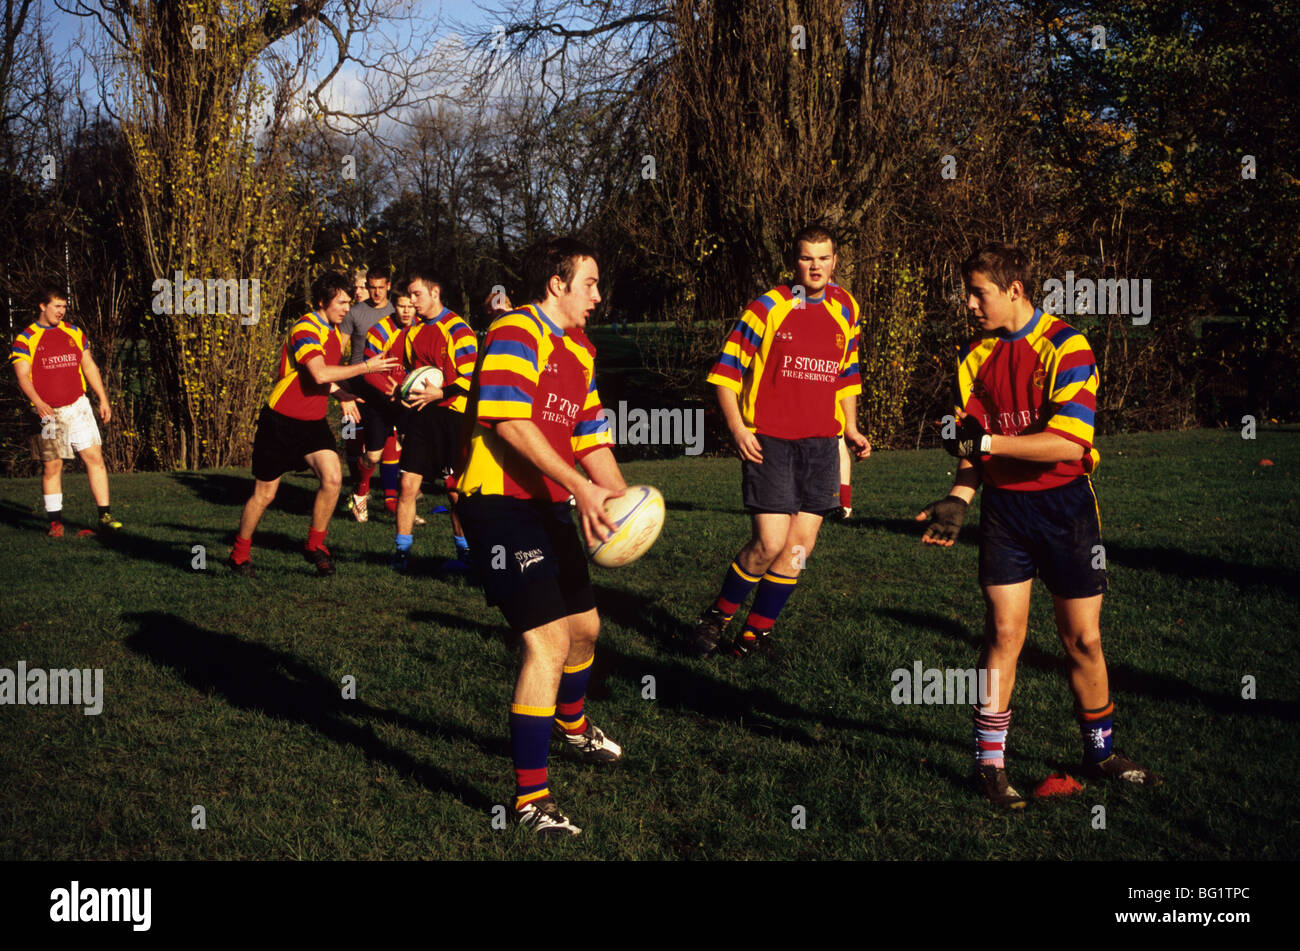 Members Of the Buxton Under 17 Rugby Club Warming Up Before A Match In Congleton Park Stock Photo